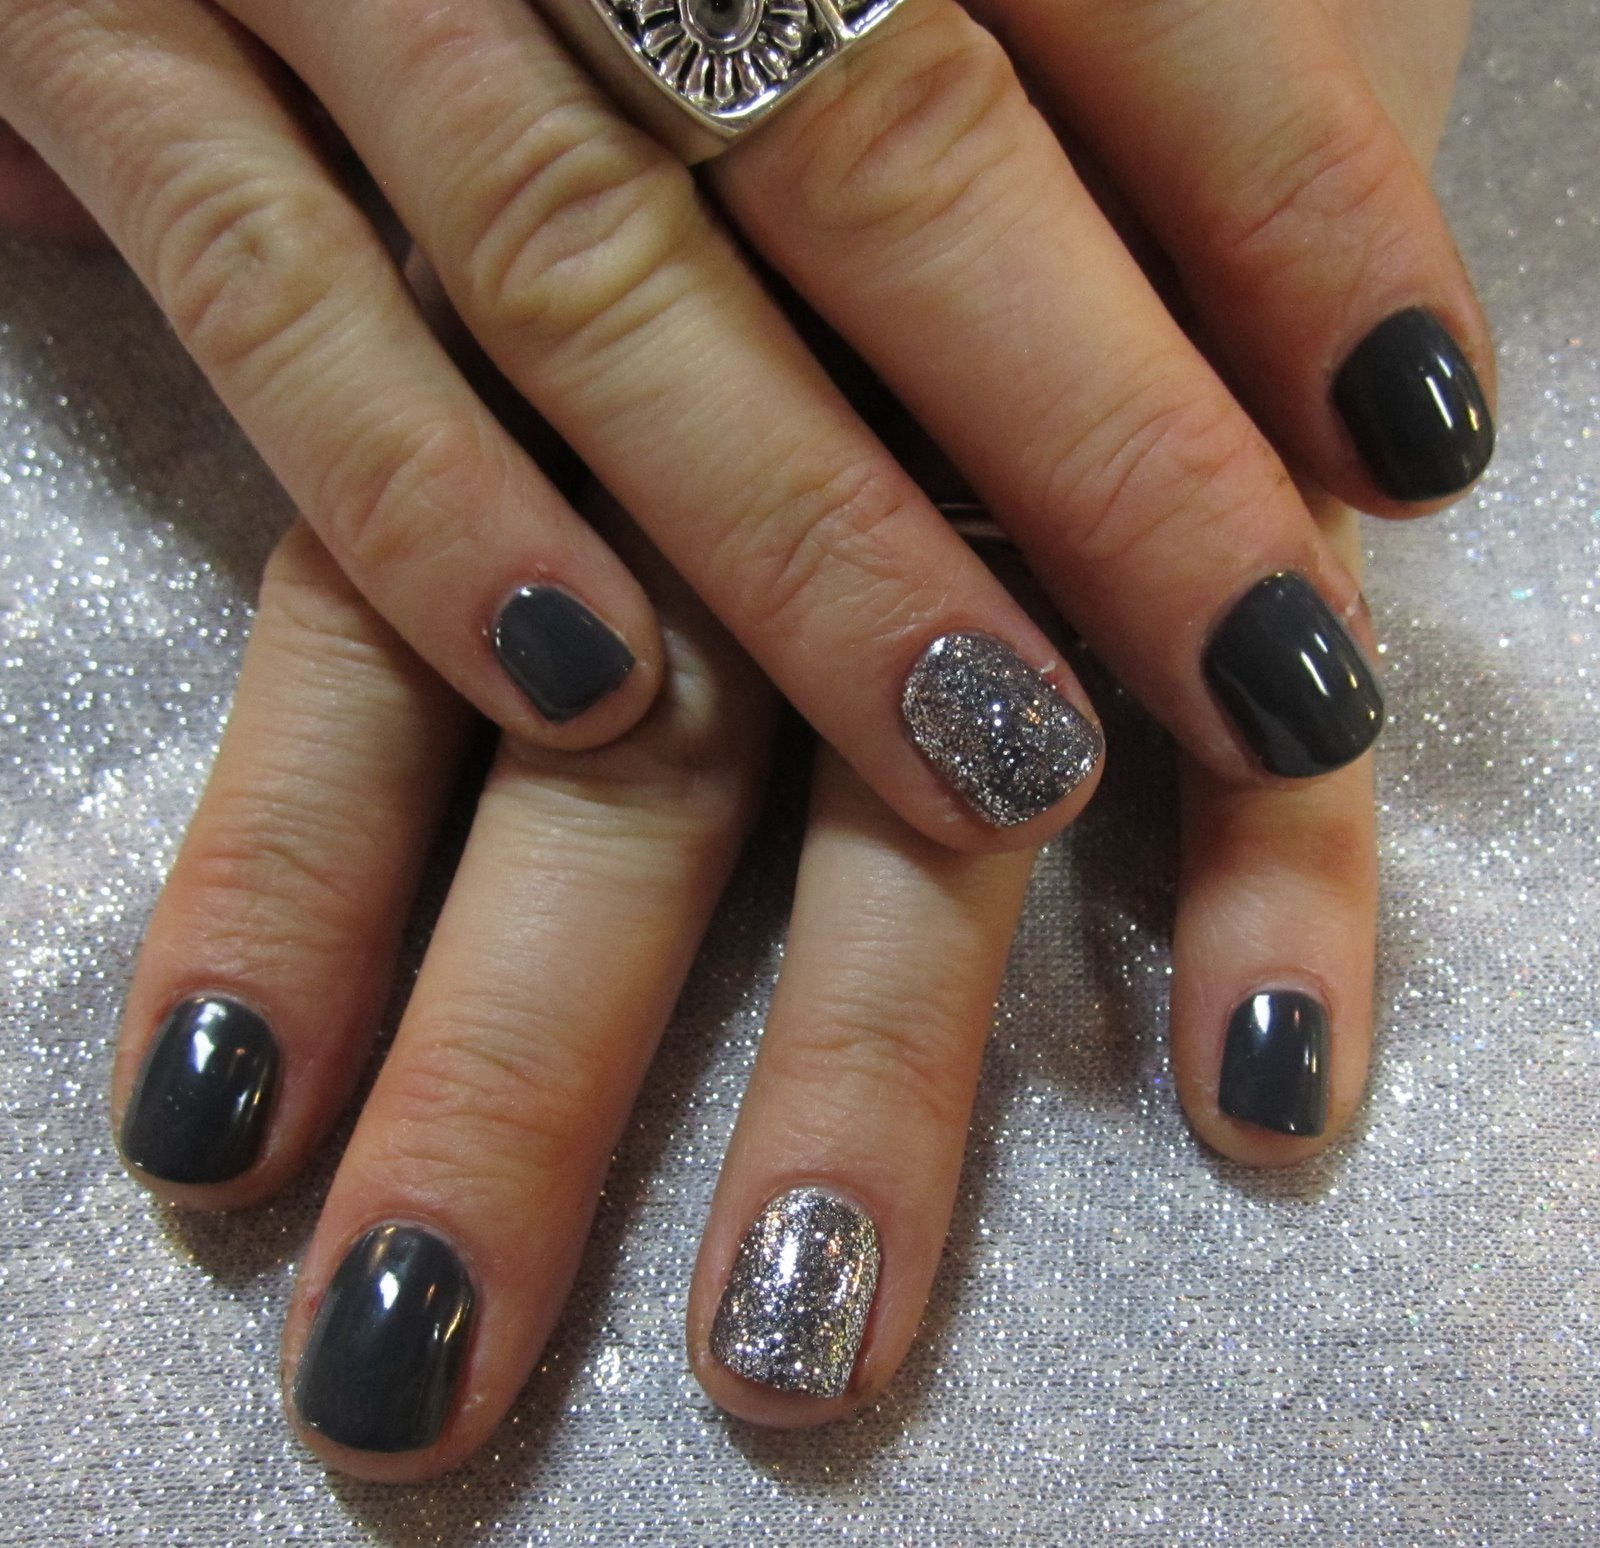 Andrea Pettingill Nails: Shellac Nails with a little Bling!